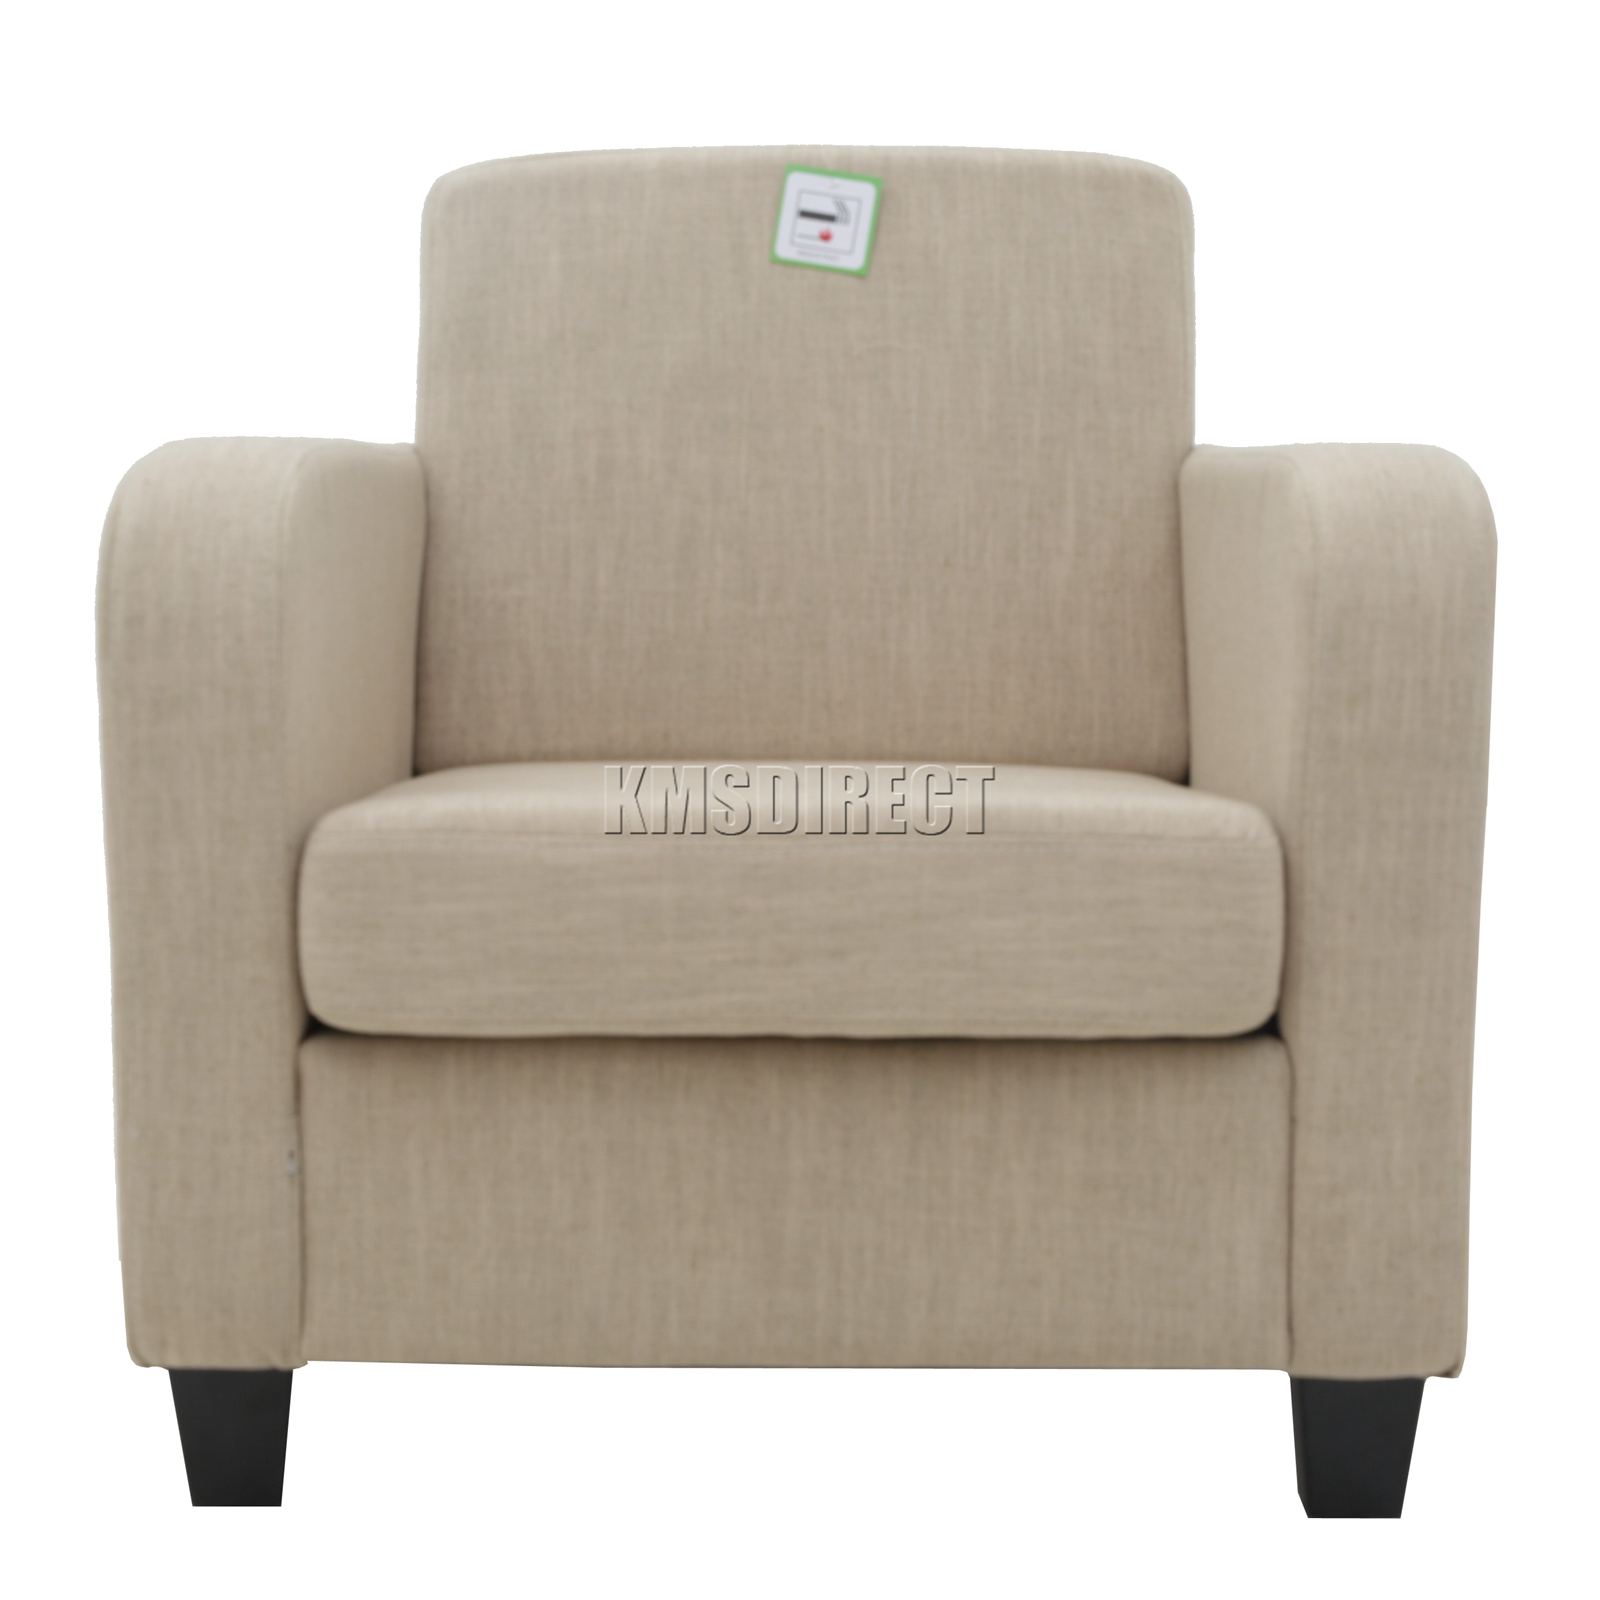 Foxhunter cream linen fabric tub chair armchair dining for Furniture armchairs